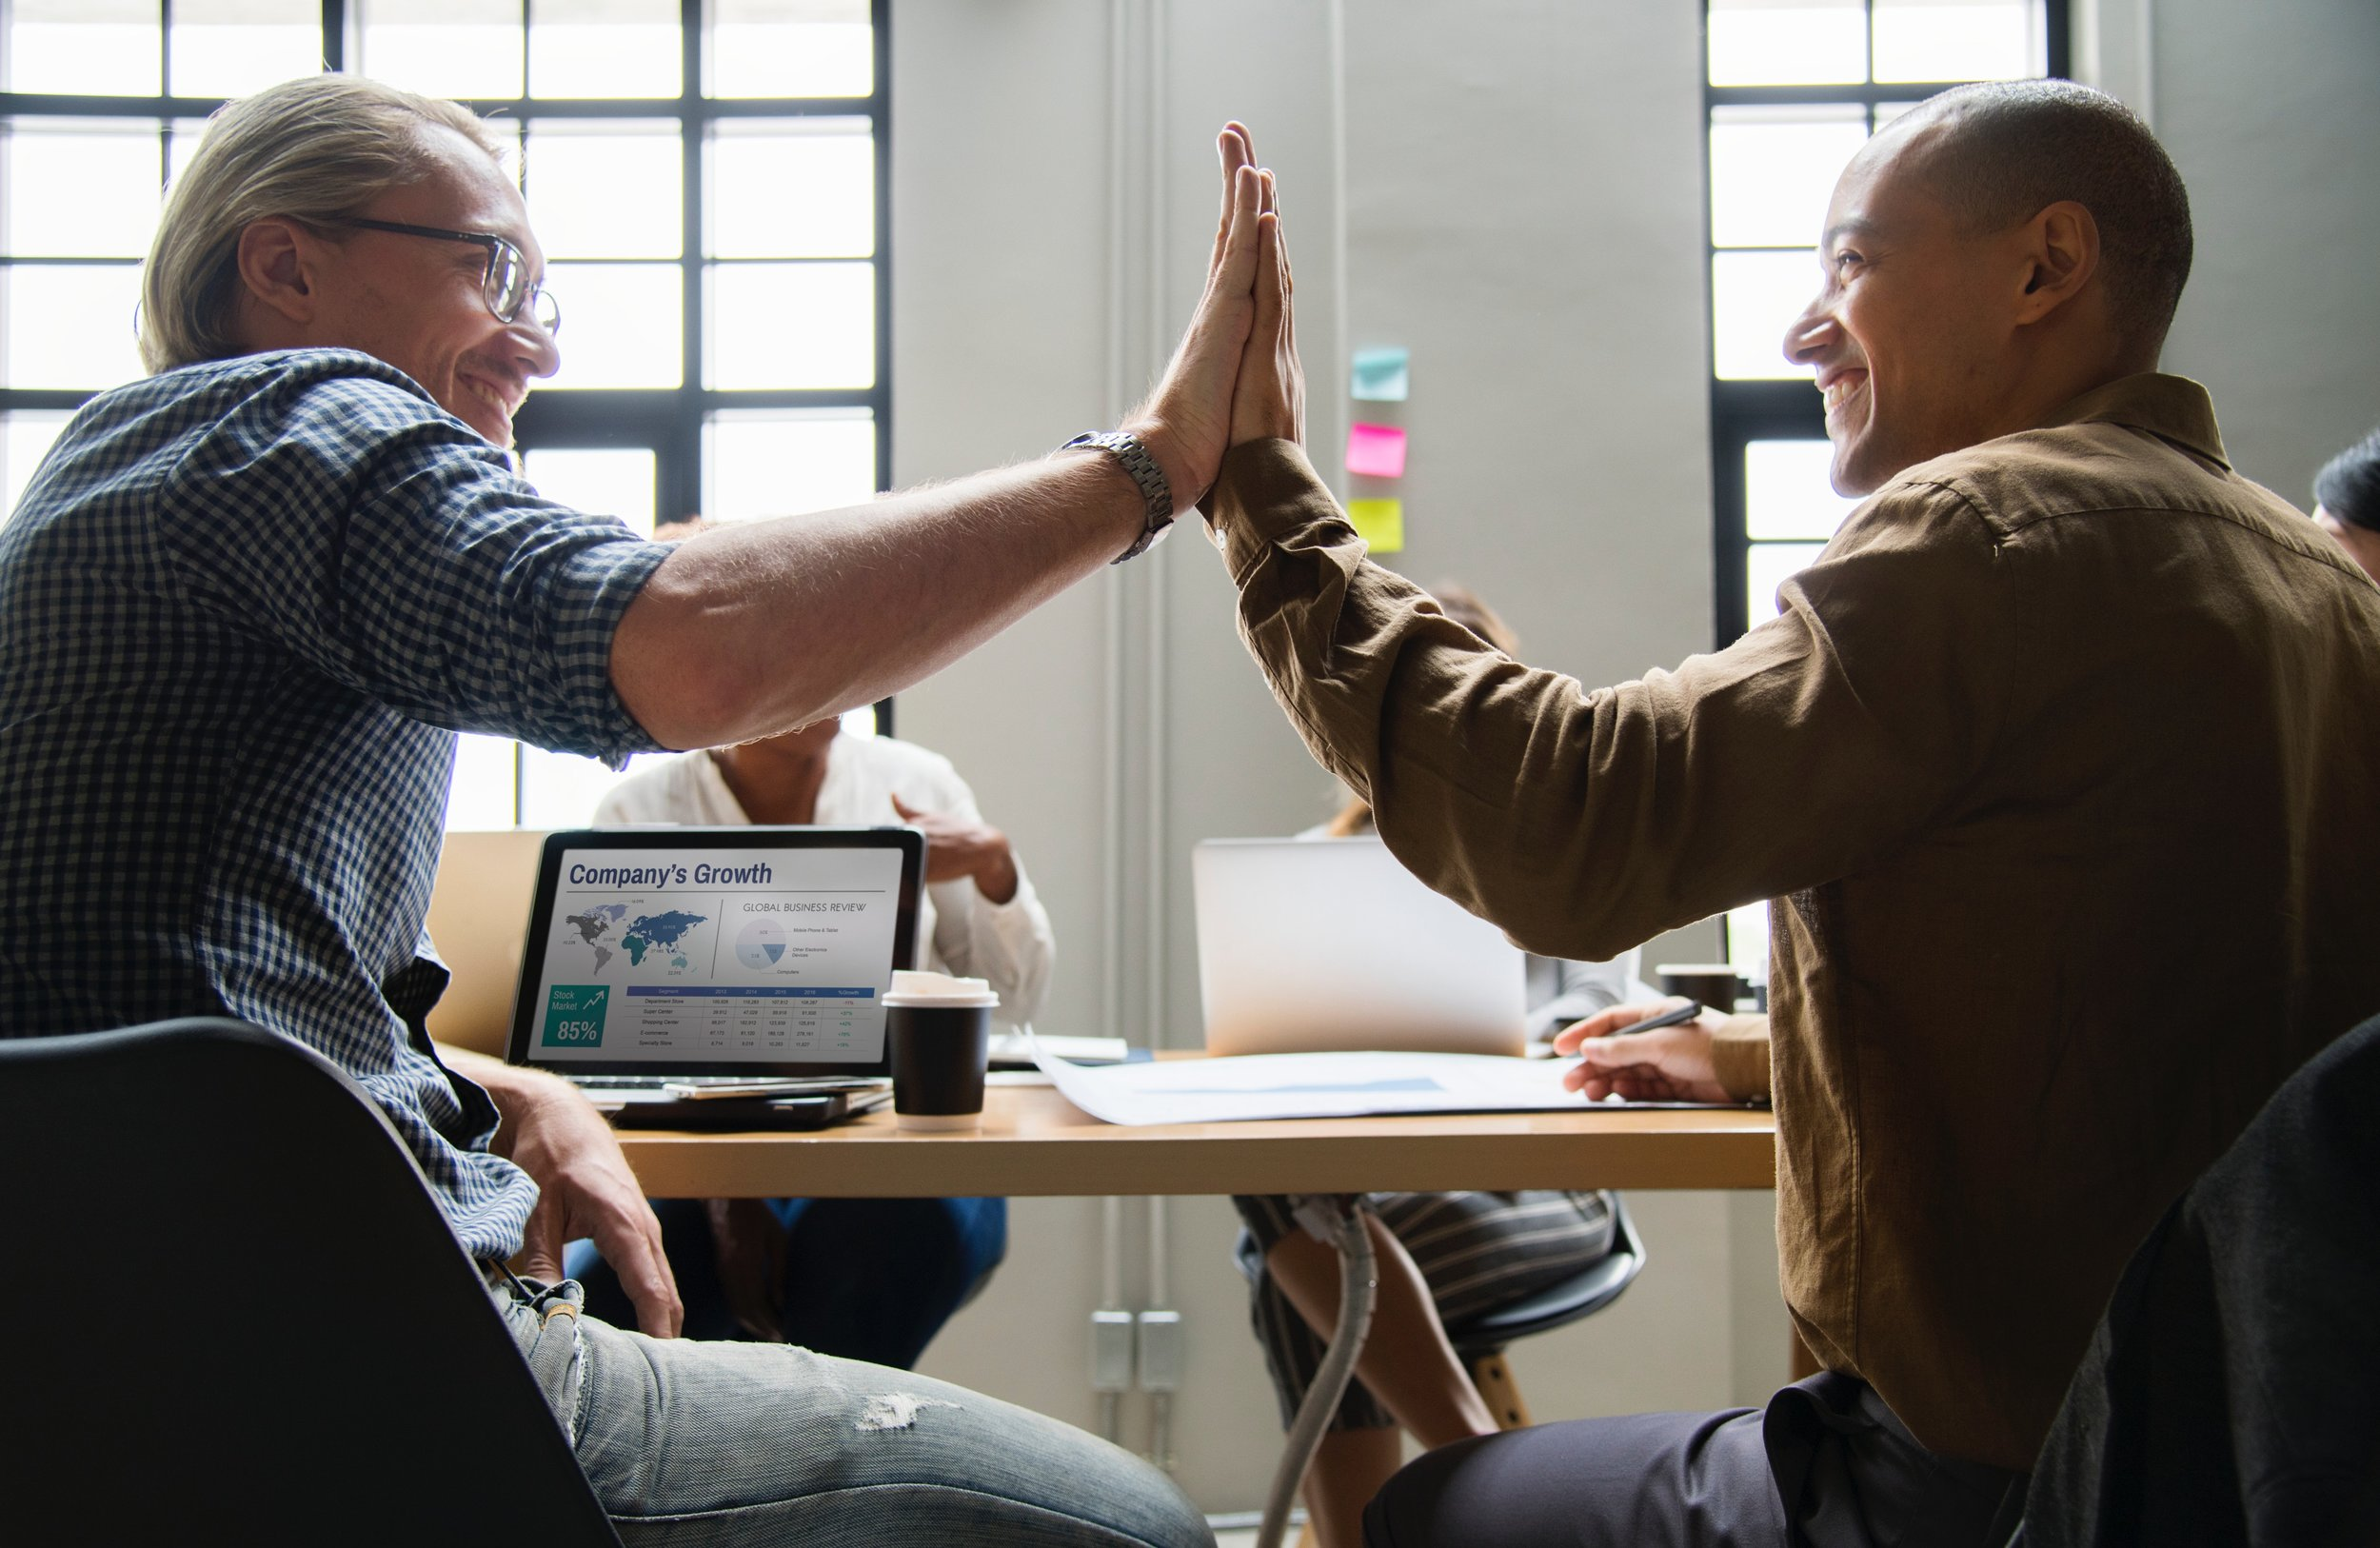 Happy employees are more engaged for their company.